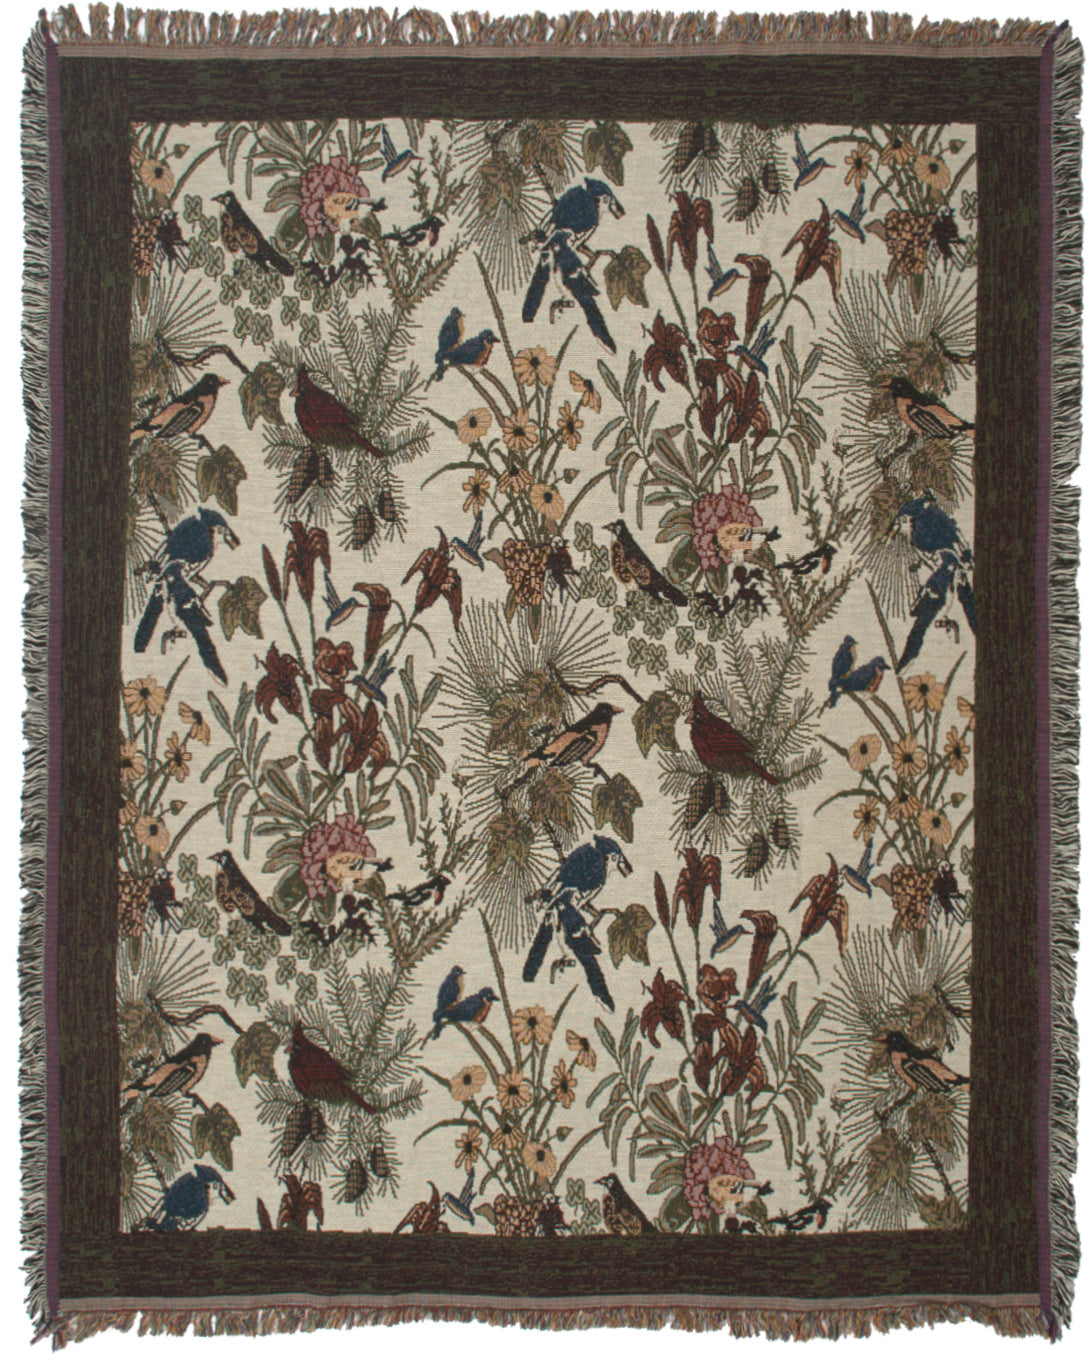 Birds with Flowers Tapestry Throw